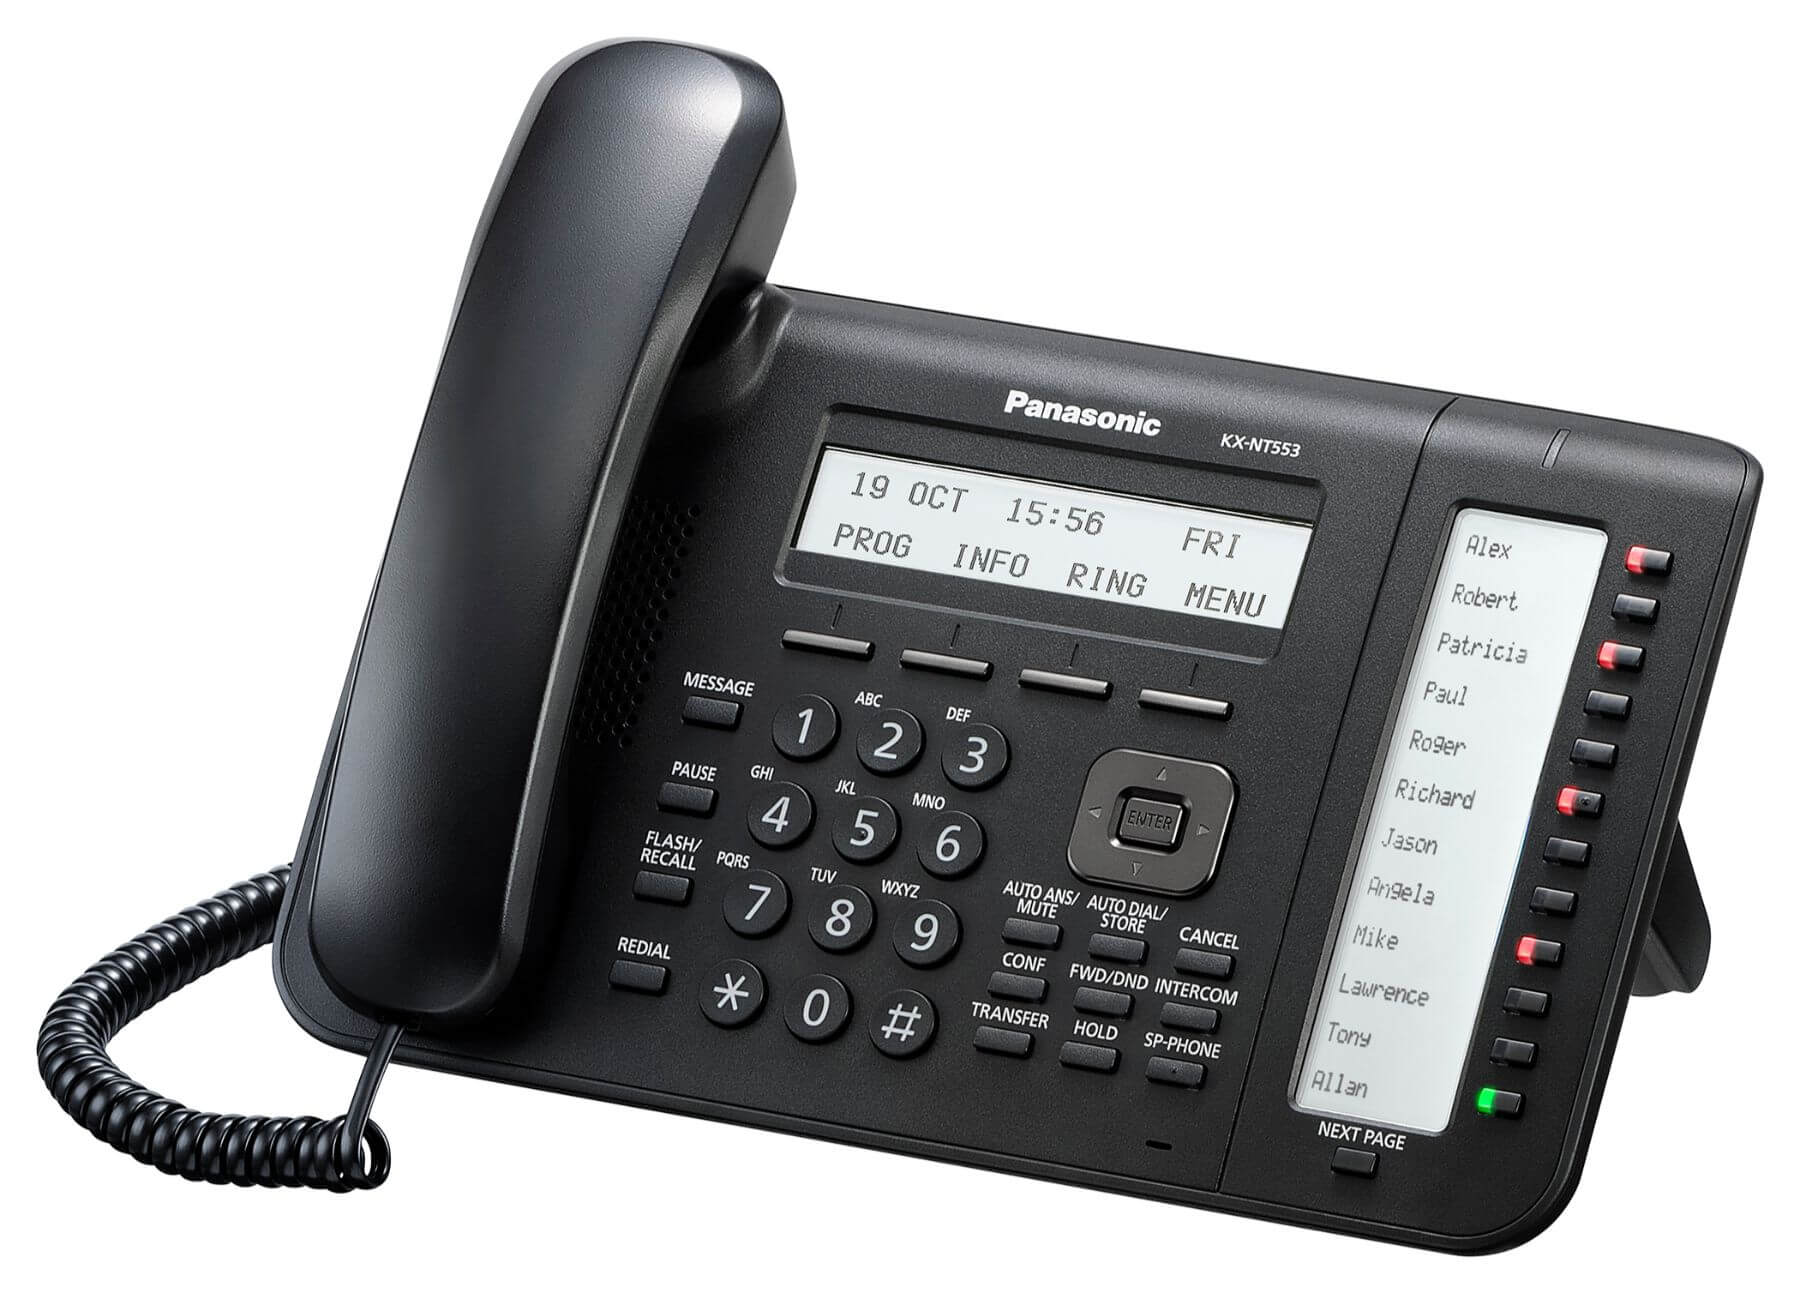 Panasonic KX-NT553 IP Phone Image